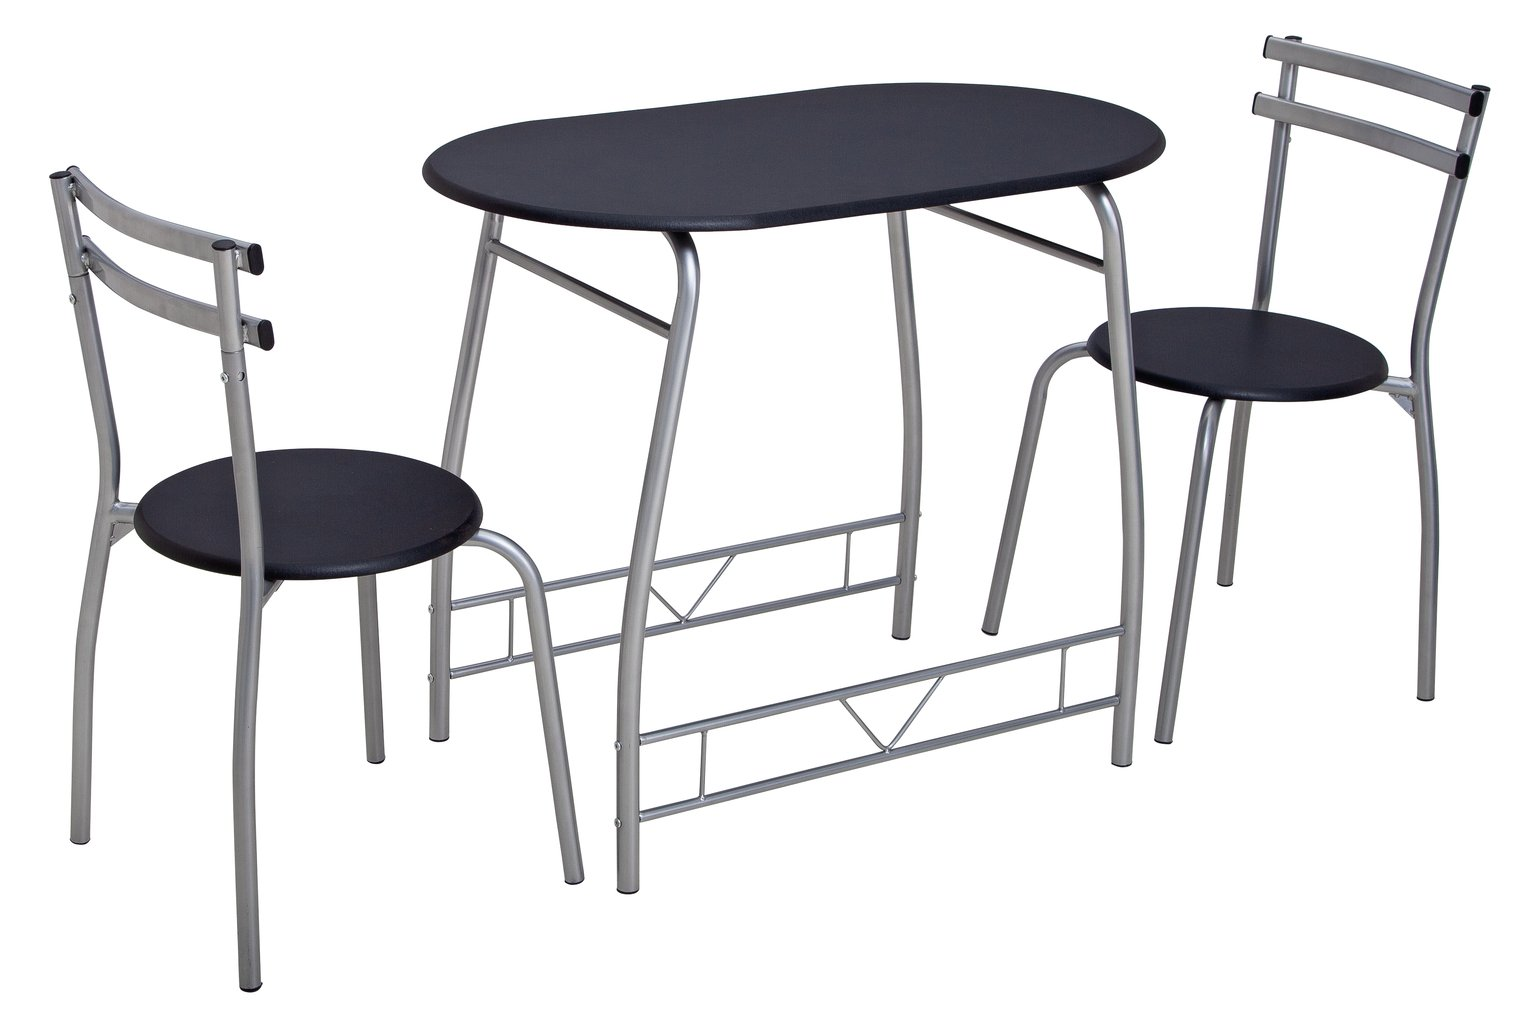 Small 2 Seater Table: 2 Seater Dining Table And Chairs Breakfast Kitchen Room